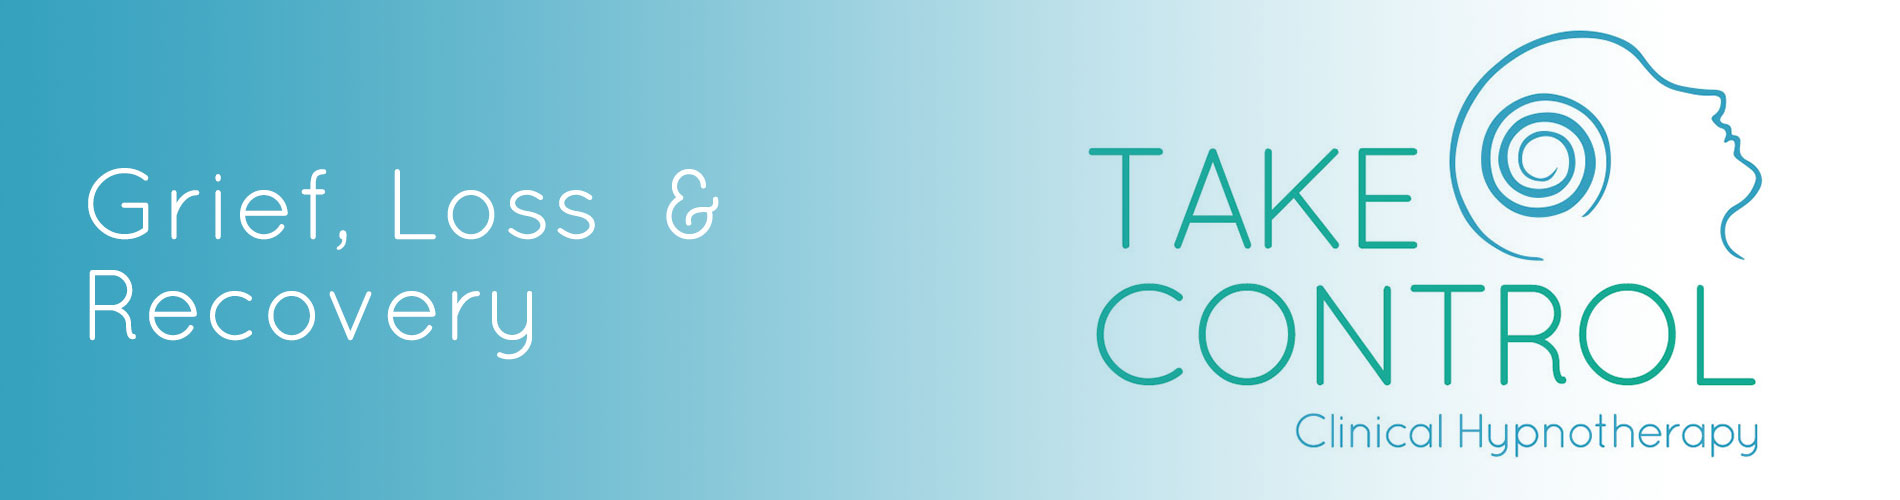 Take Control - Grief Loss and Recovery Banner